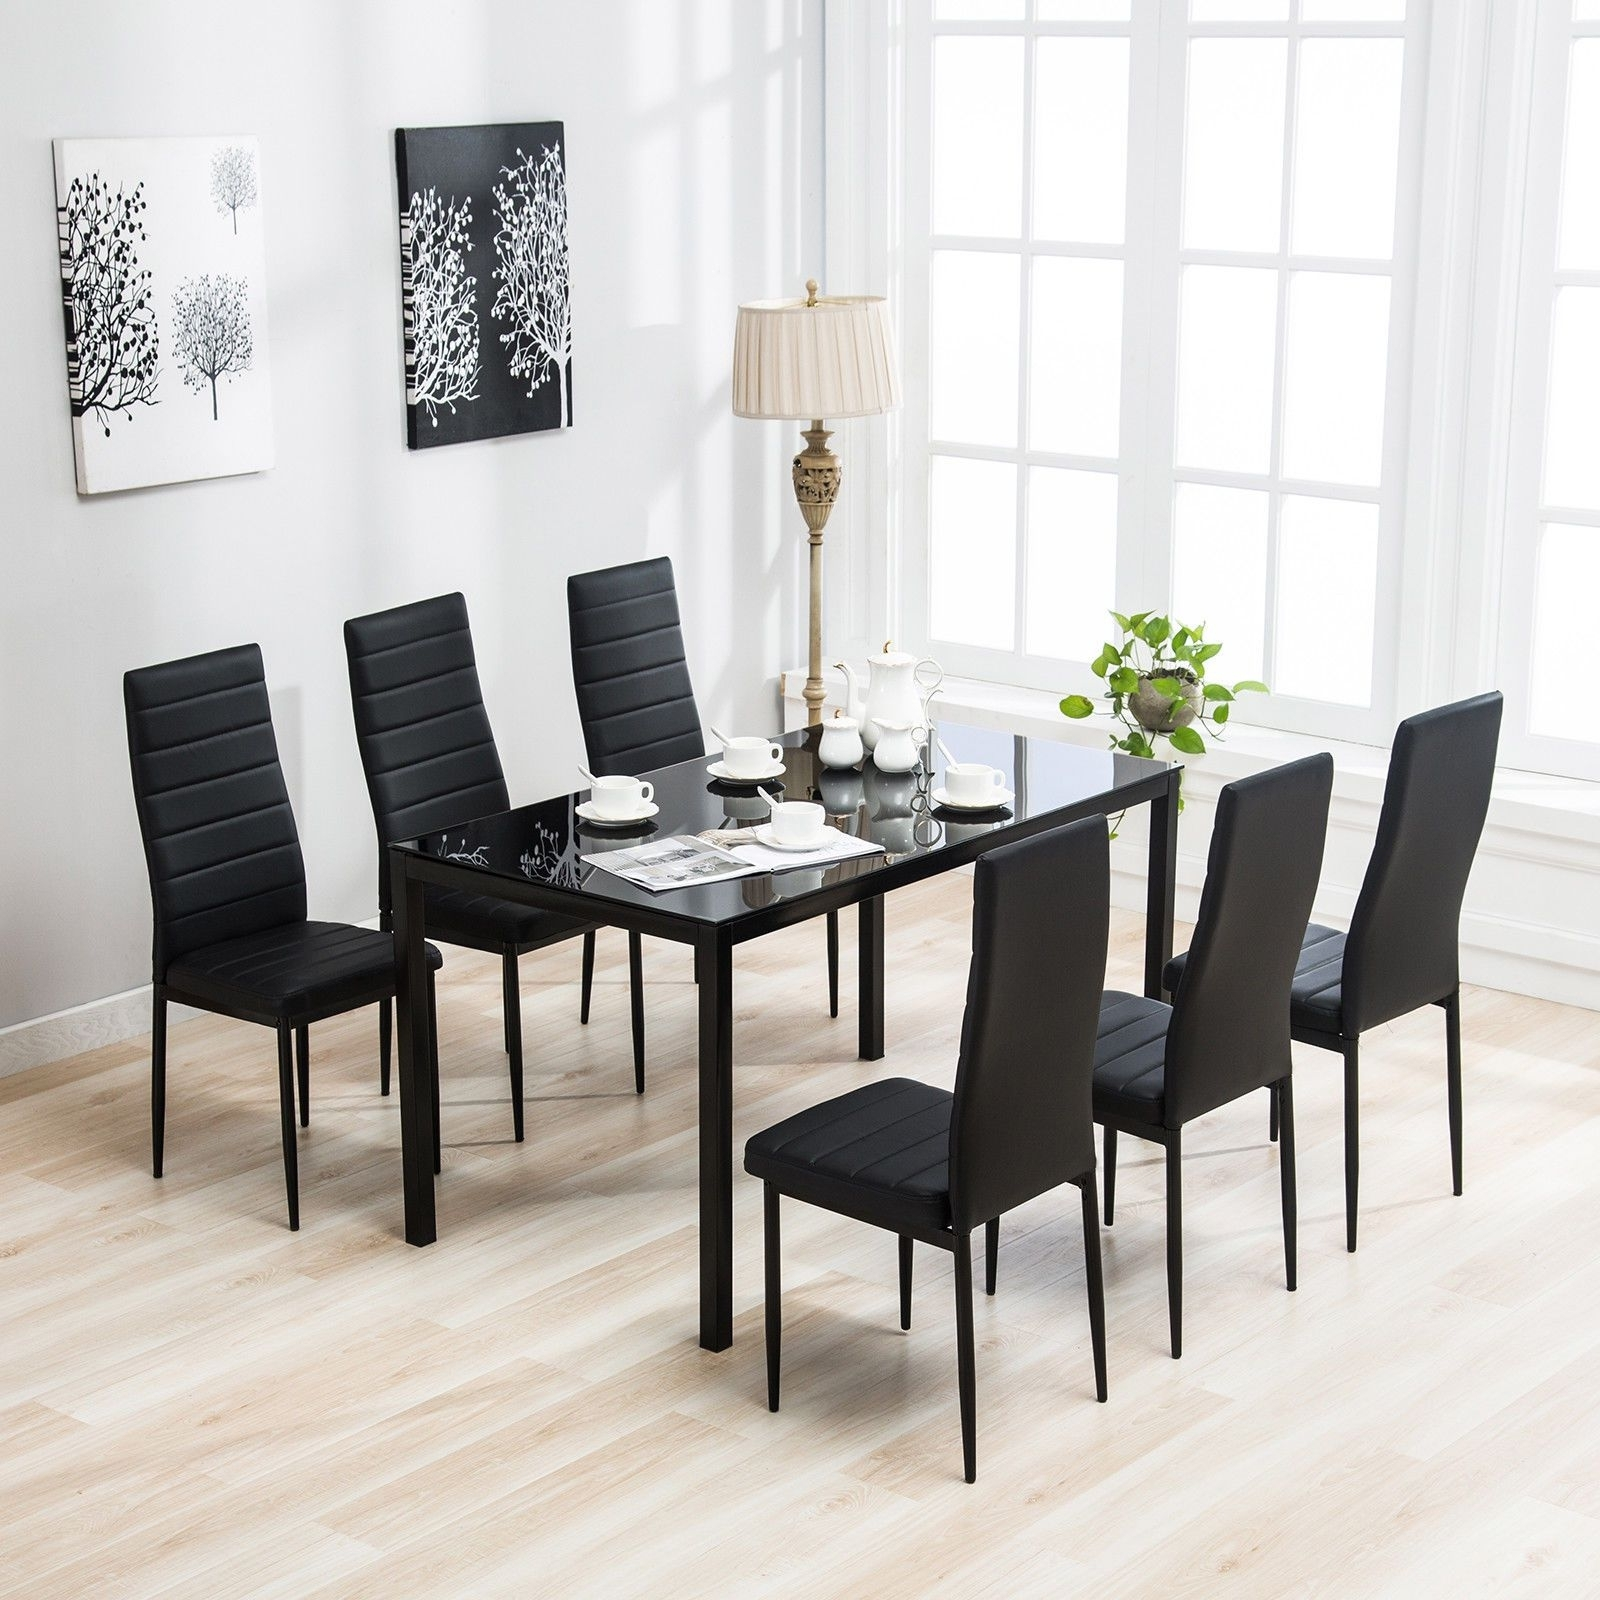 Best And Newest 7 Piece Dining Table Set 6 Chairs Black Glass Metal Kitchen Room With Regard To Black Glass Dining Tables And 6 Chairs (Gallery 17 of 25)